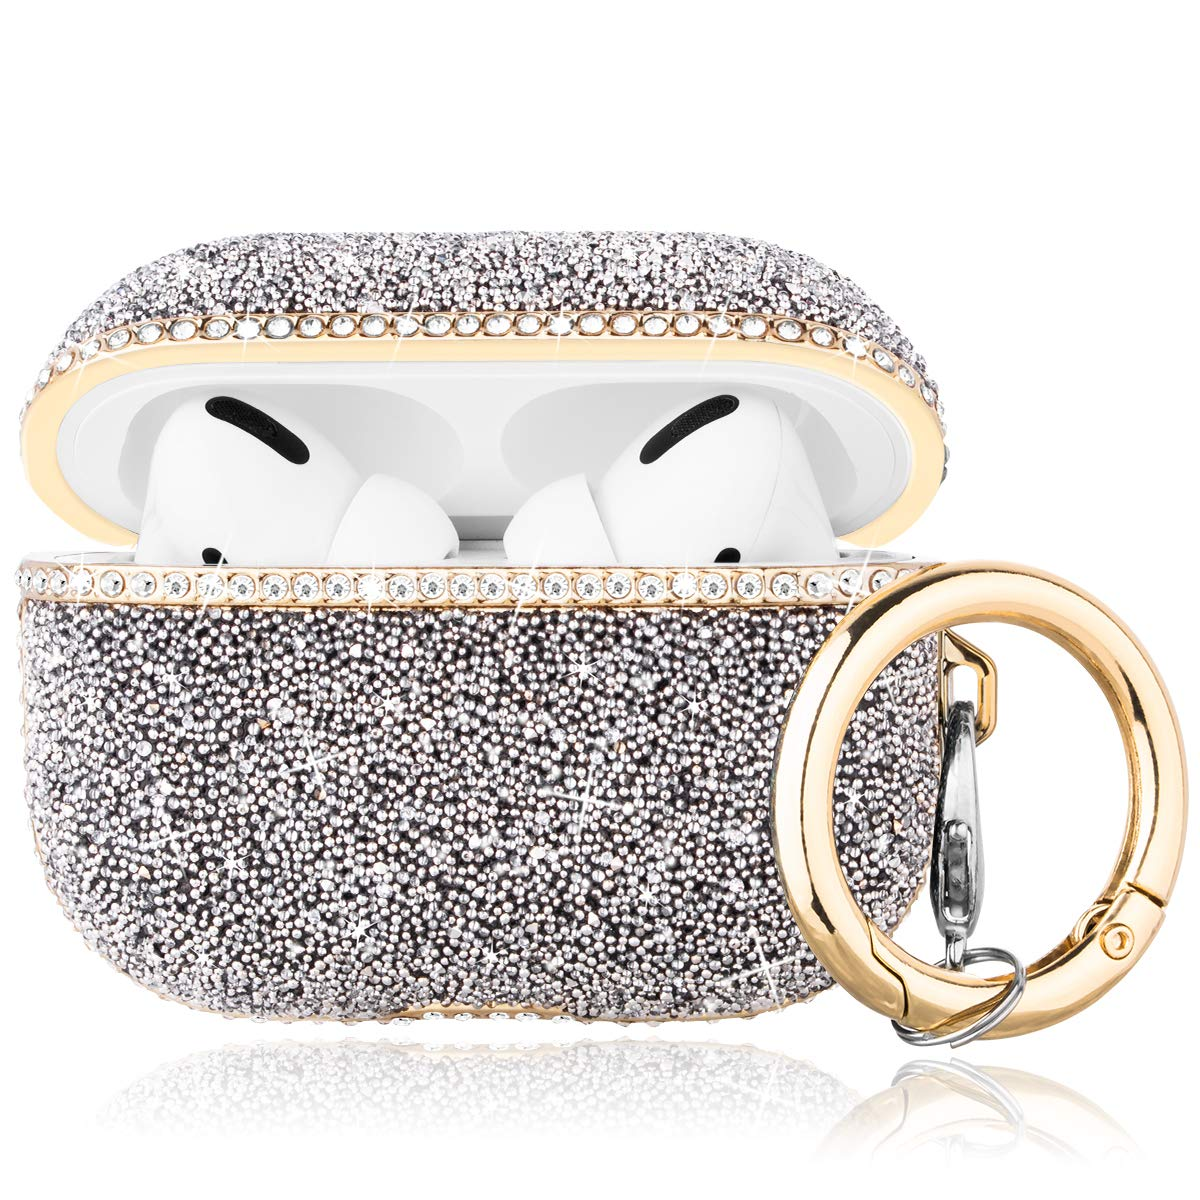 Caka Diamond Case for AirPods Pro Glitter Case for Women Girls Crystal Diamond Rhinestone Bling Shiny Protective with Keychain Cute Case Cover for AirPods Pro (Silver)